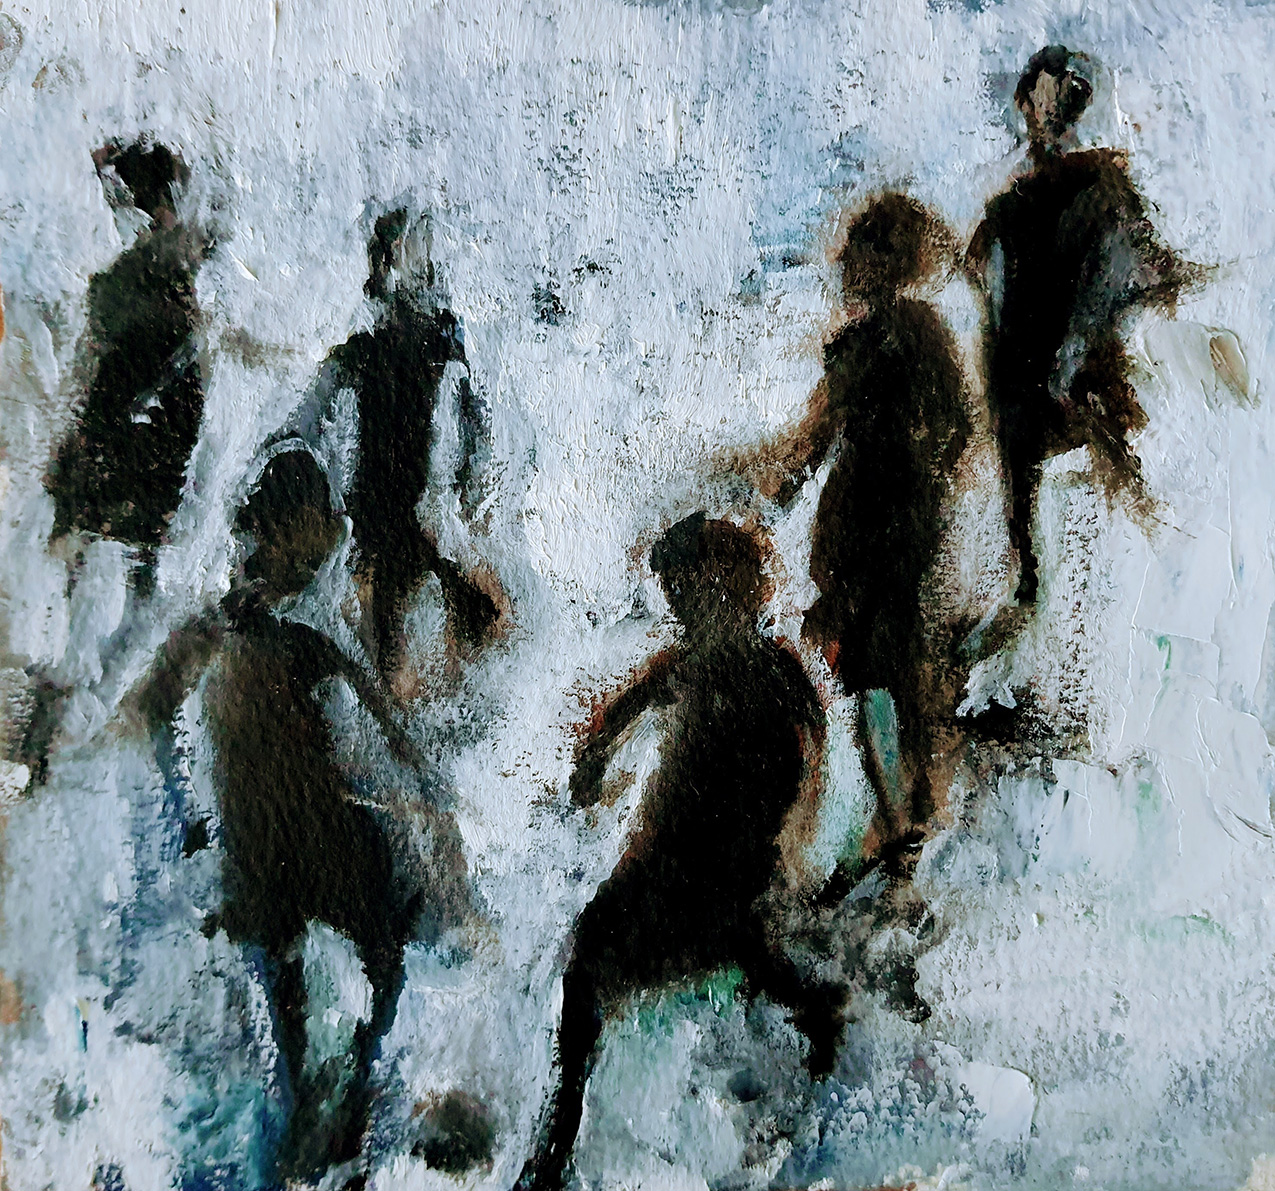 Textured abstract painting of silhouettes of children playing with a ball on a dirty white background